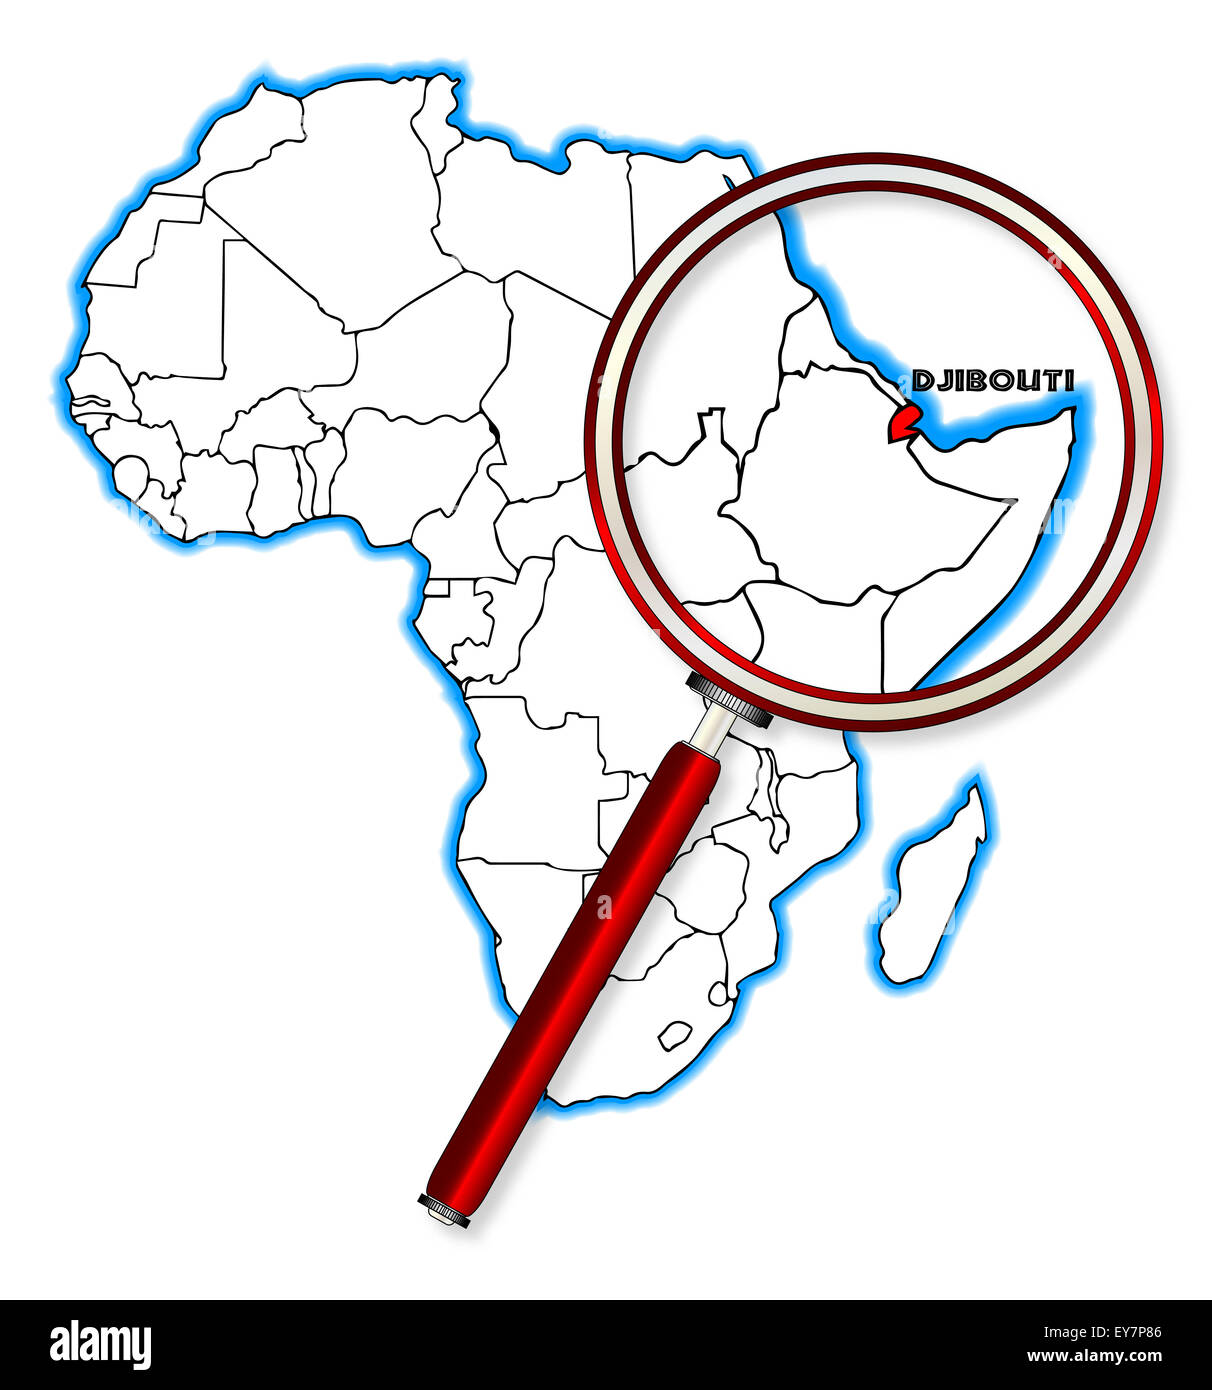 Djibouti On Africa Map.Djibouti Outline Inset Into A Map Of Africa Over A White Background